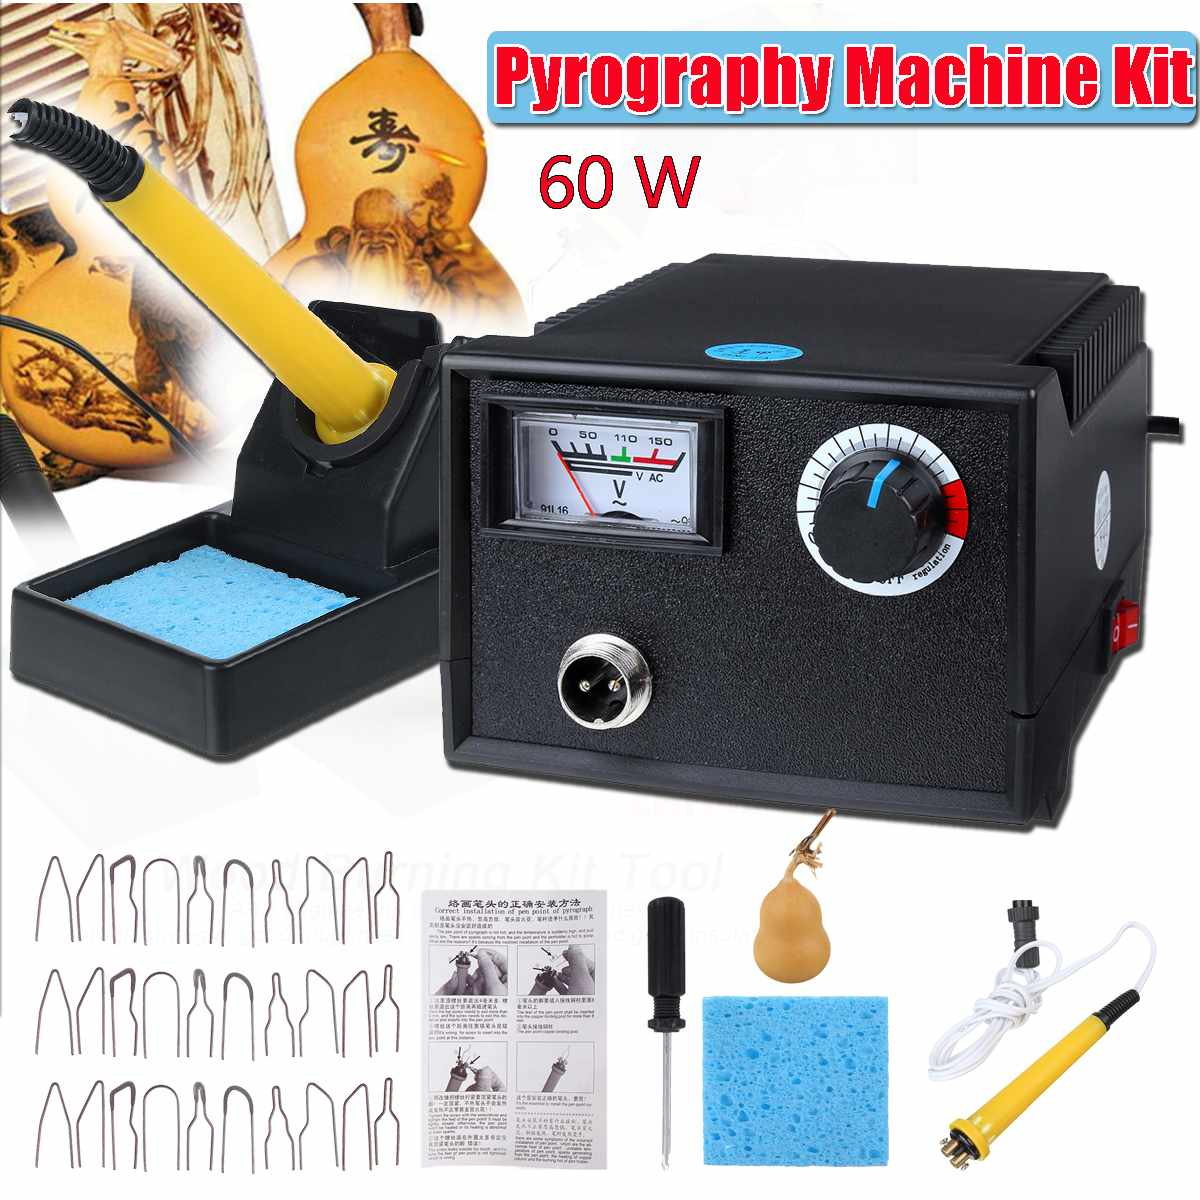 60W Pyrography Machine Wood Burning Adjustable Temperature Burner Wood Cautery Pyrography Pen Gourd Crafts Tool Set